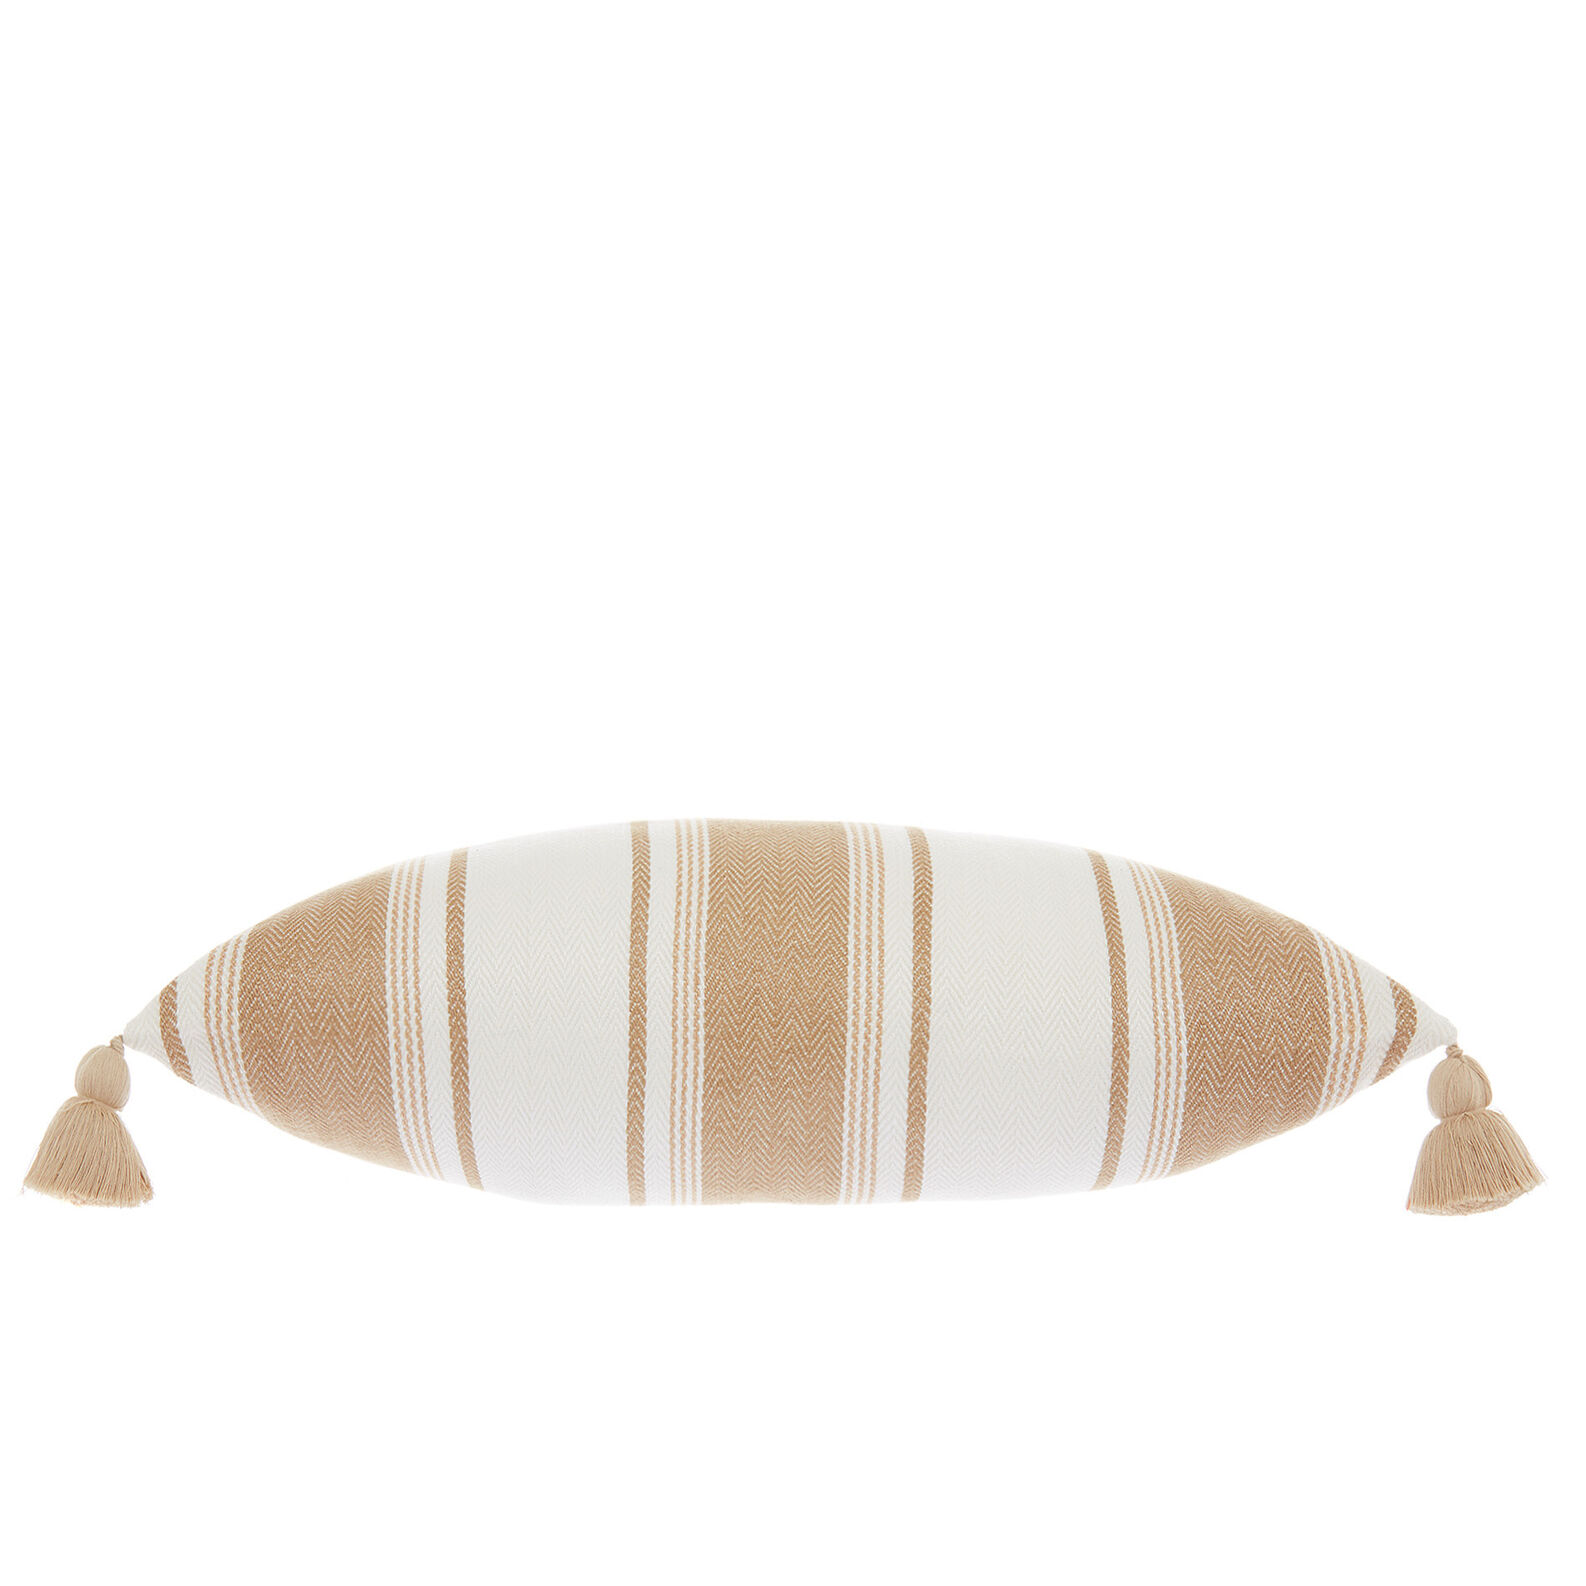 Striped linen and cotton cushion 35x55cm